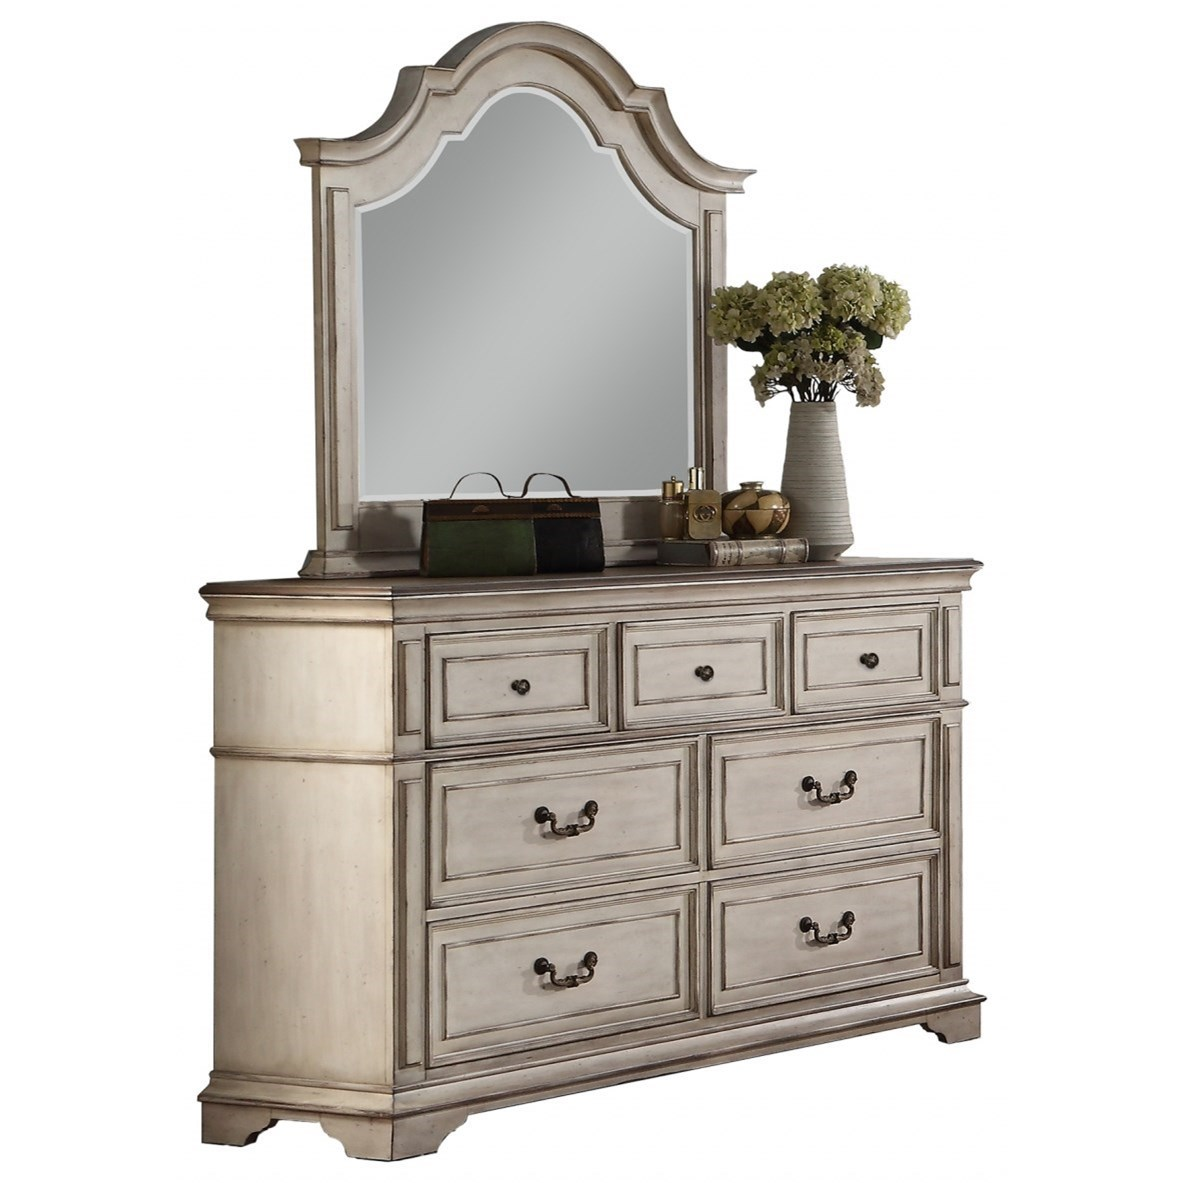 Anastasia Dresser and Mirror Set by New Classic at Pilgrim Furniture City